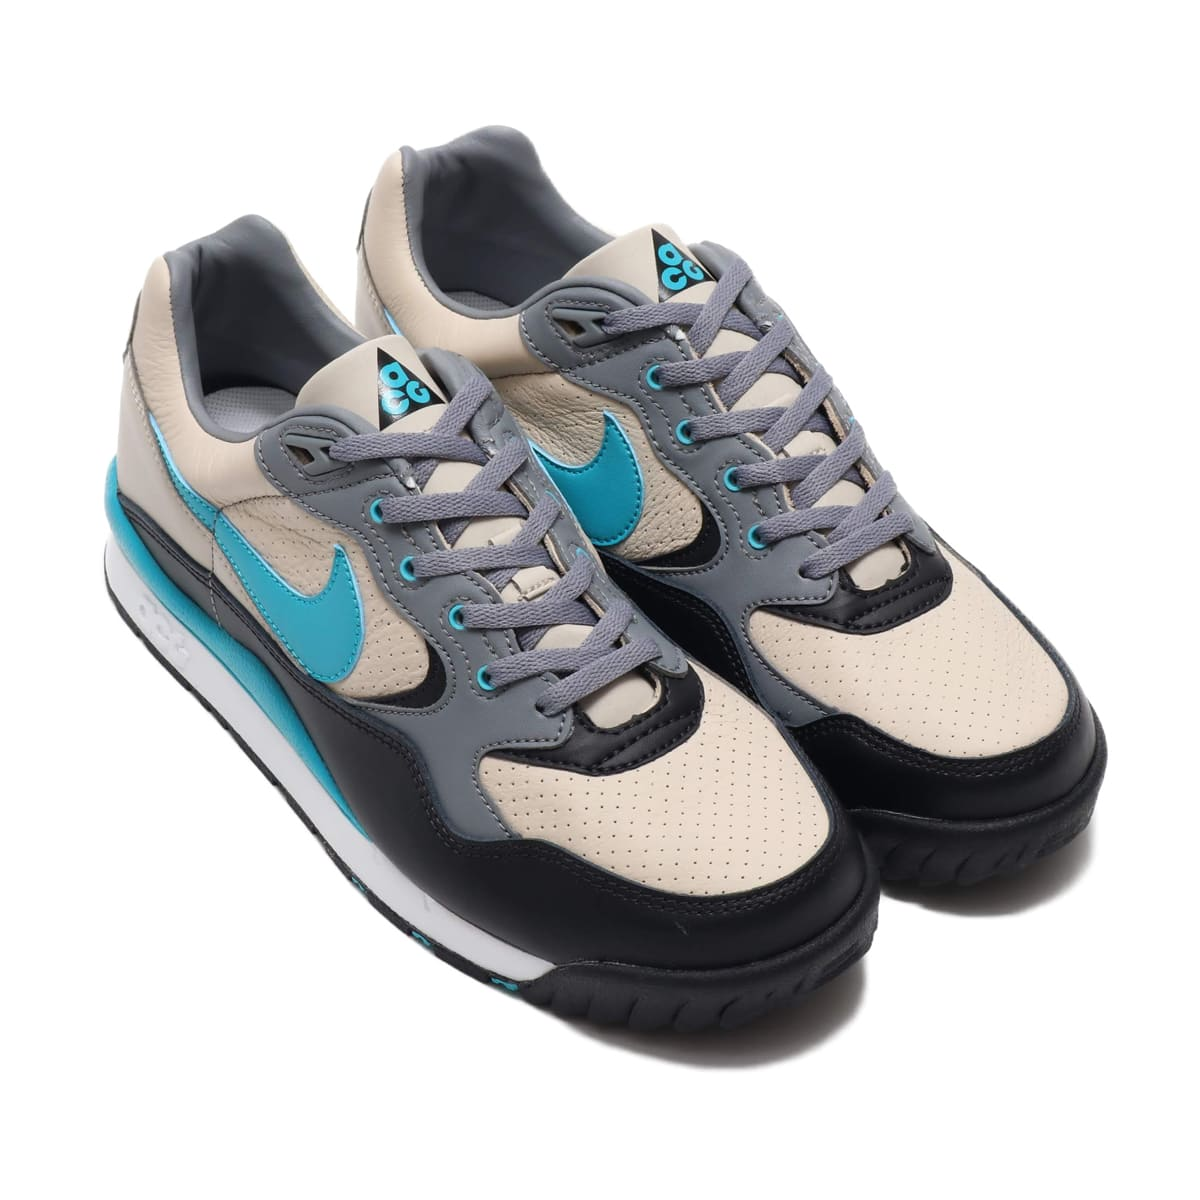 NIKE AIR WILDWOOD ACG DESERT SAND/TEAL NEBULA-COOL GREY-WHITE 19FA-S_photo_large